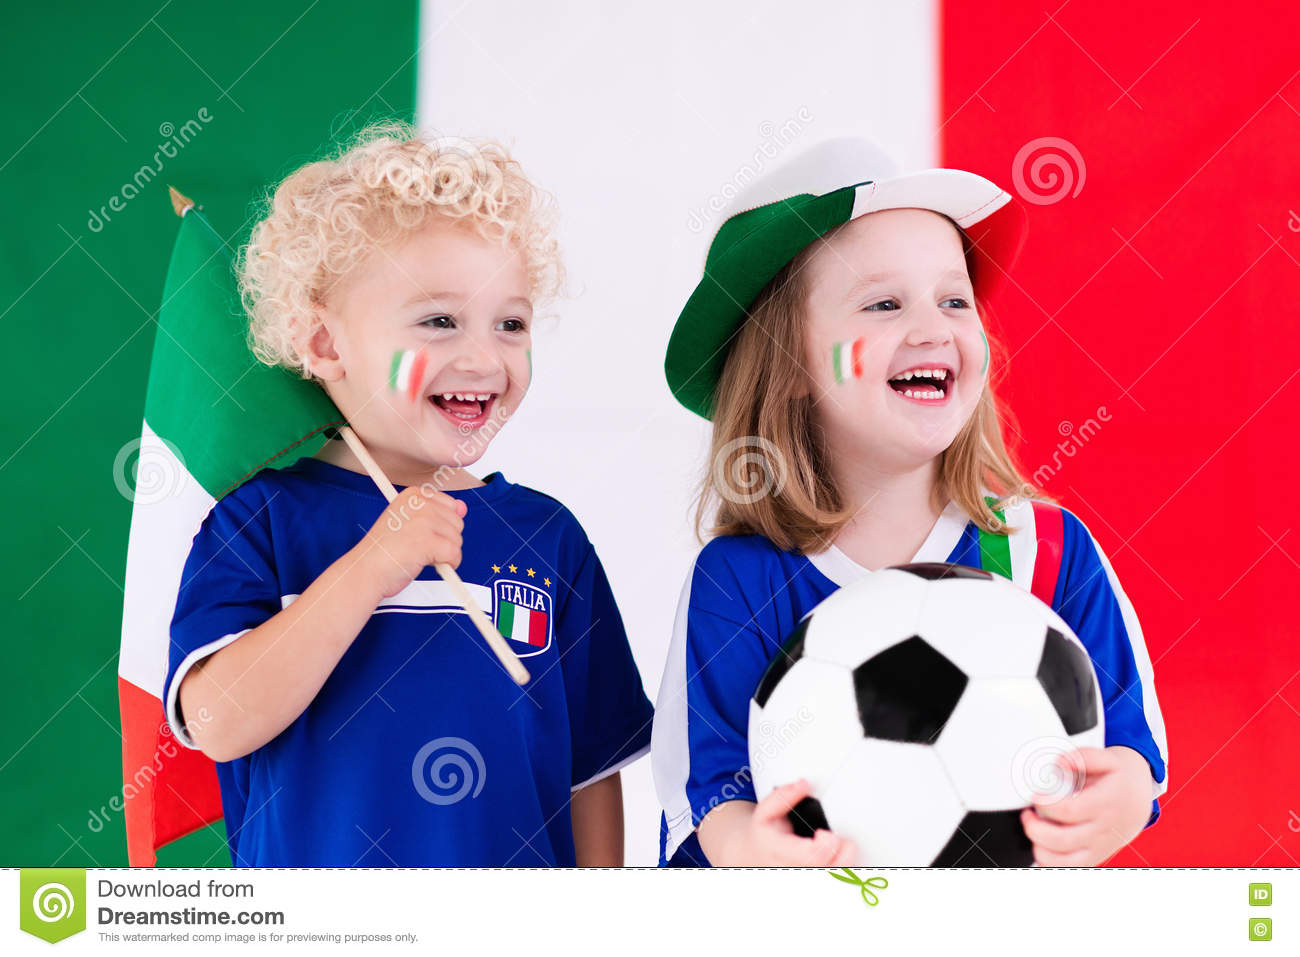 5443e734ed0 Children cheering and supporting Italian national football team. Kids fans  and supporters of Italy during soccer championship.